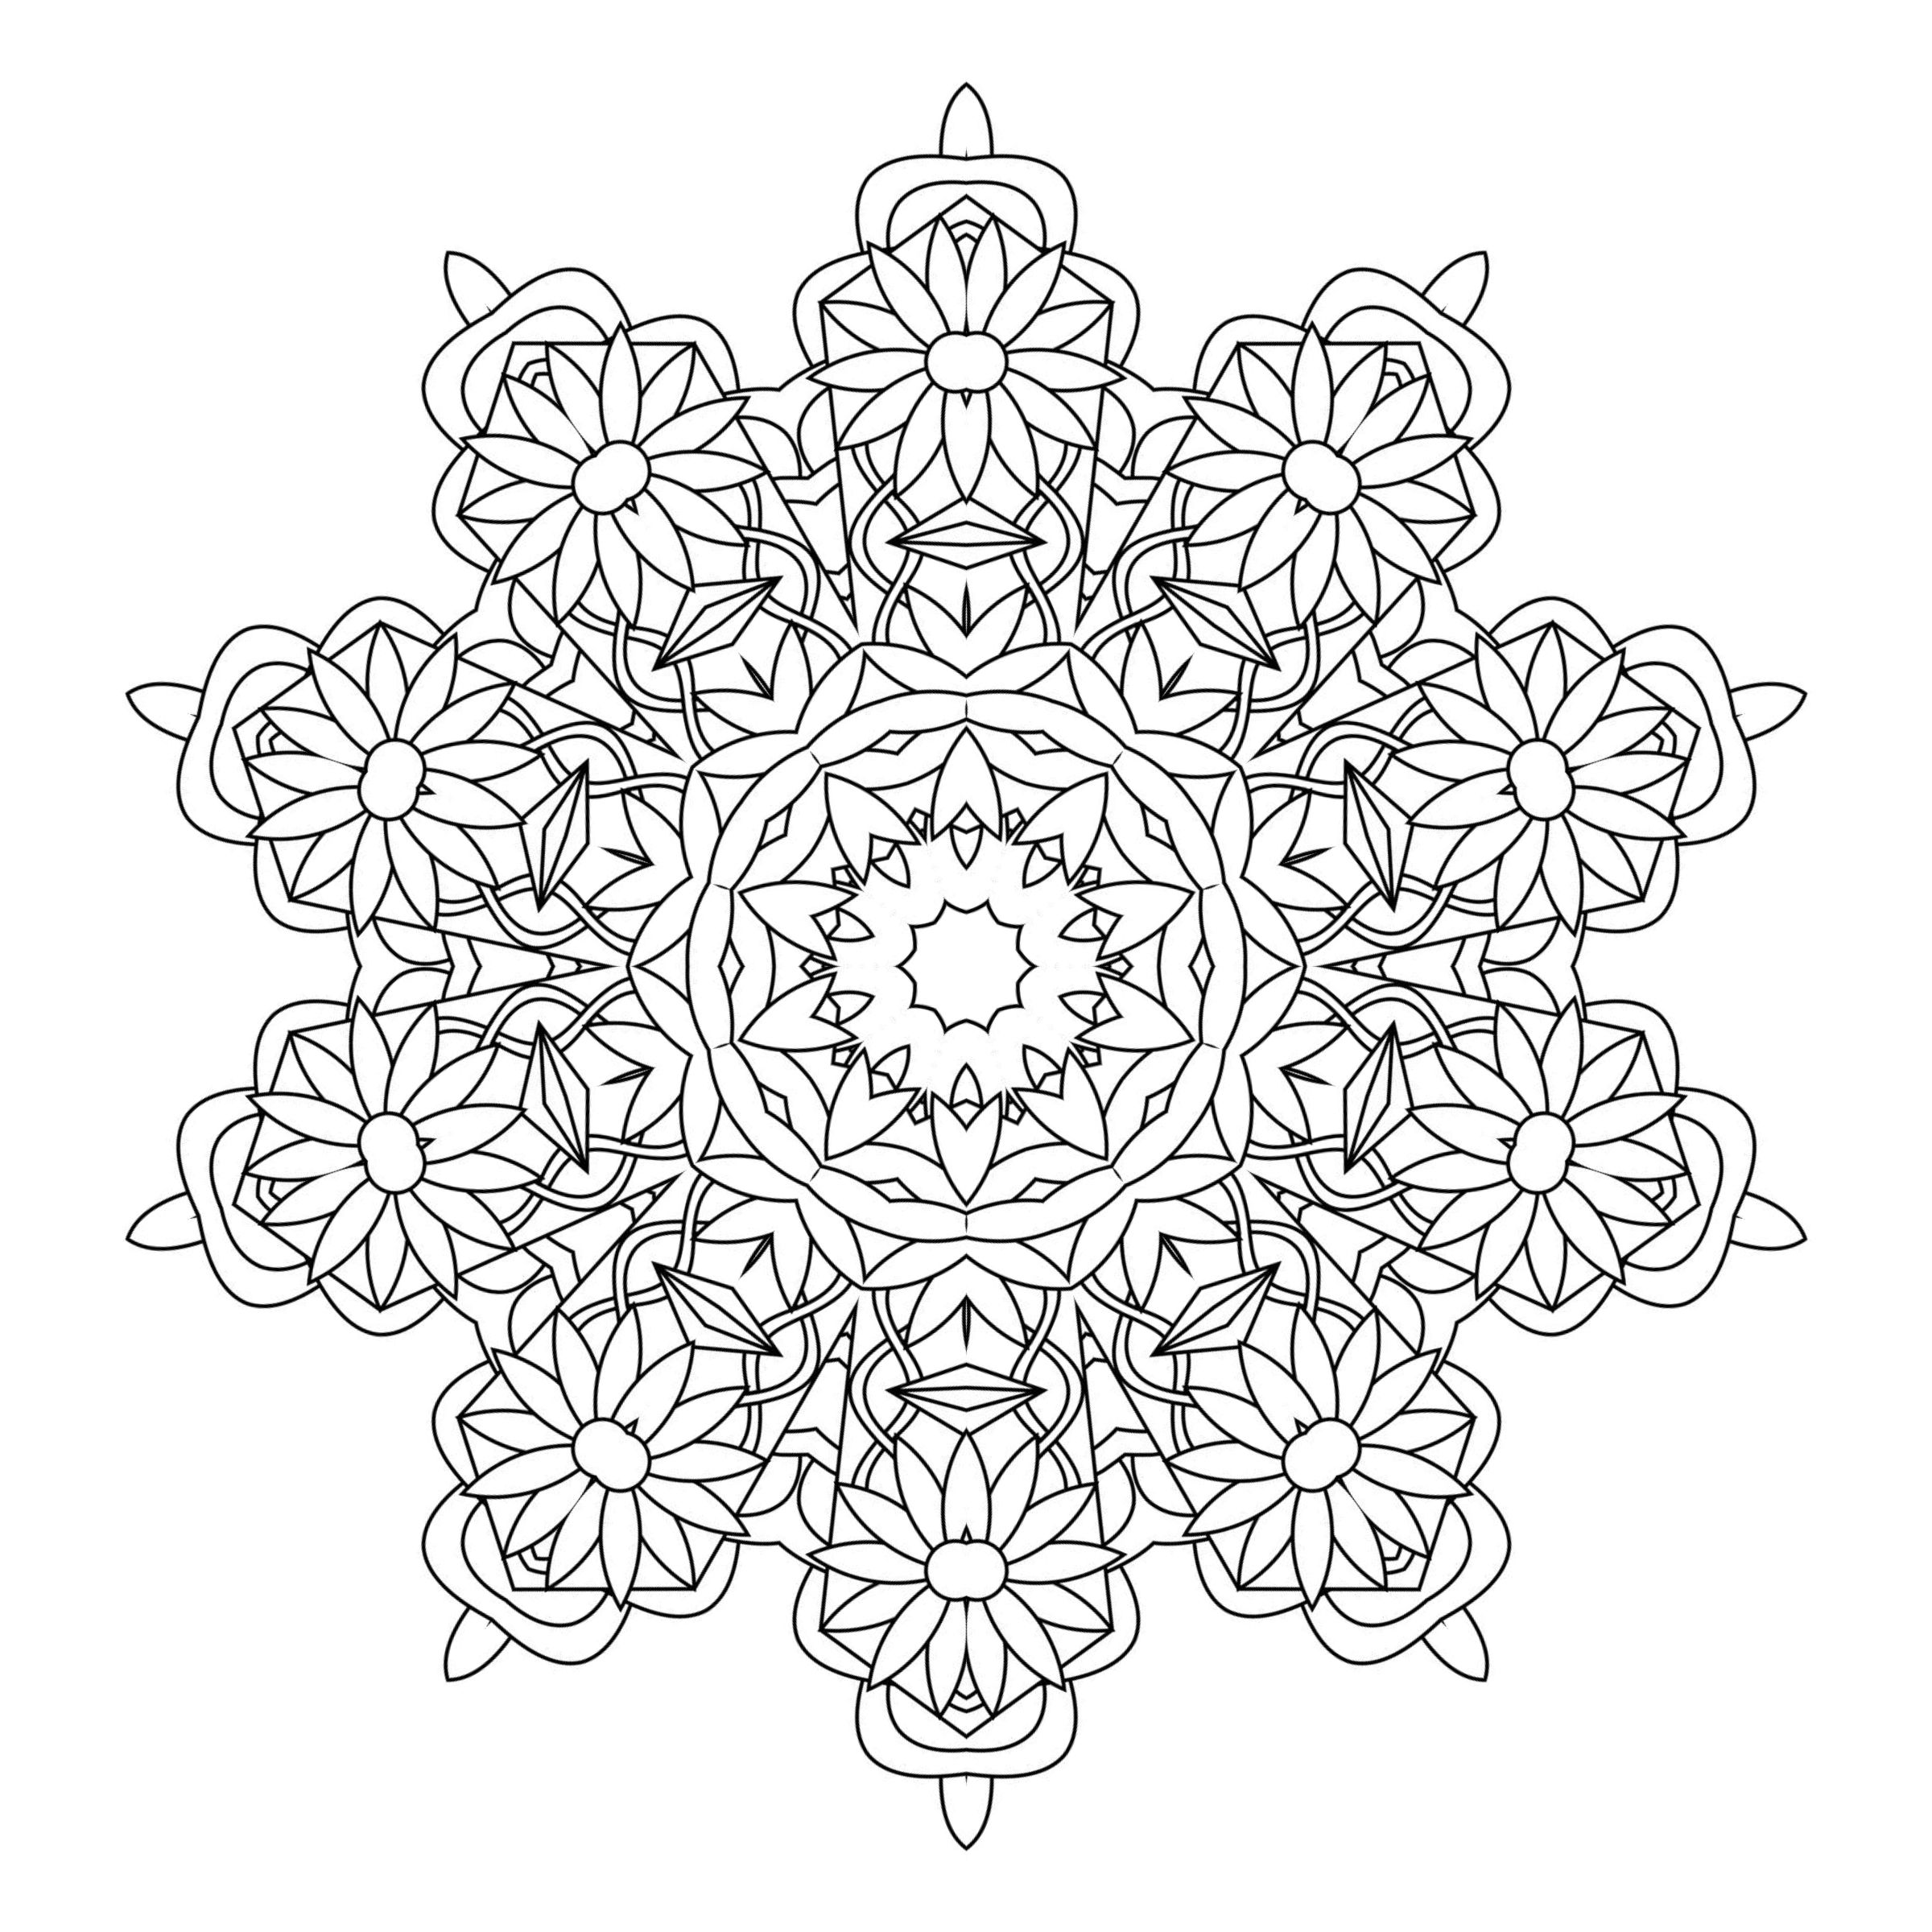 Free Coloring Page to Print and Color | COLORING PAGE ADULTS ...